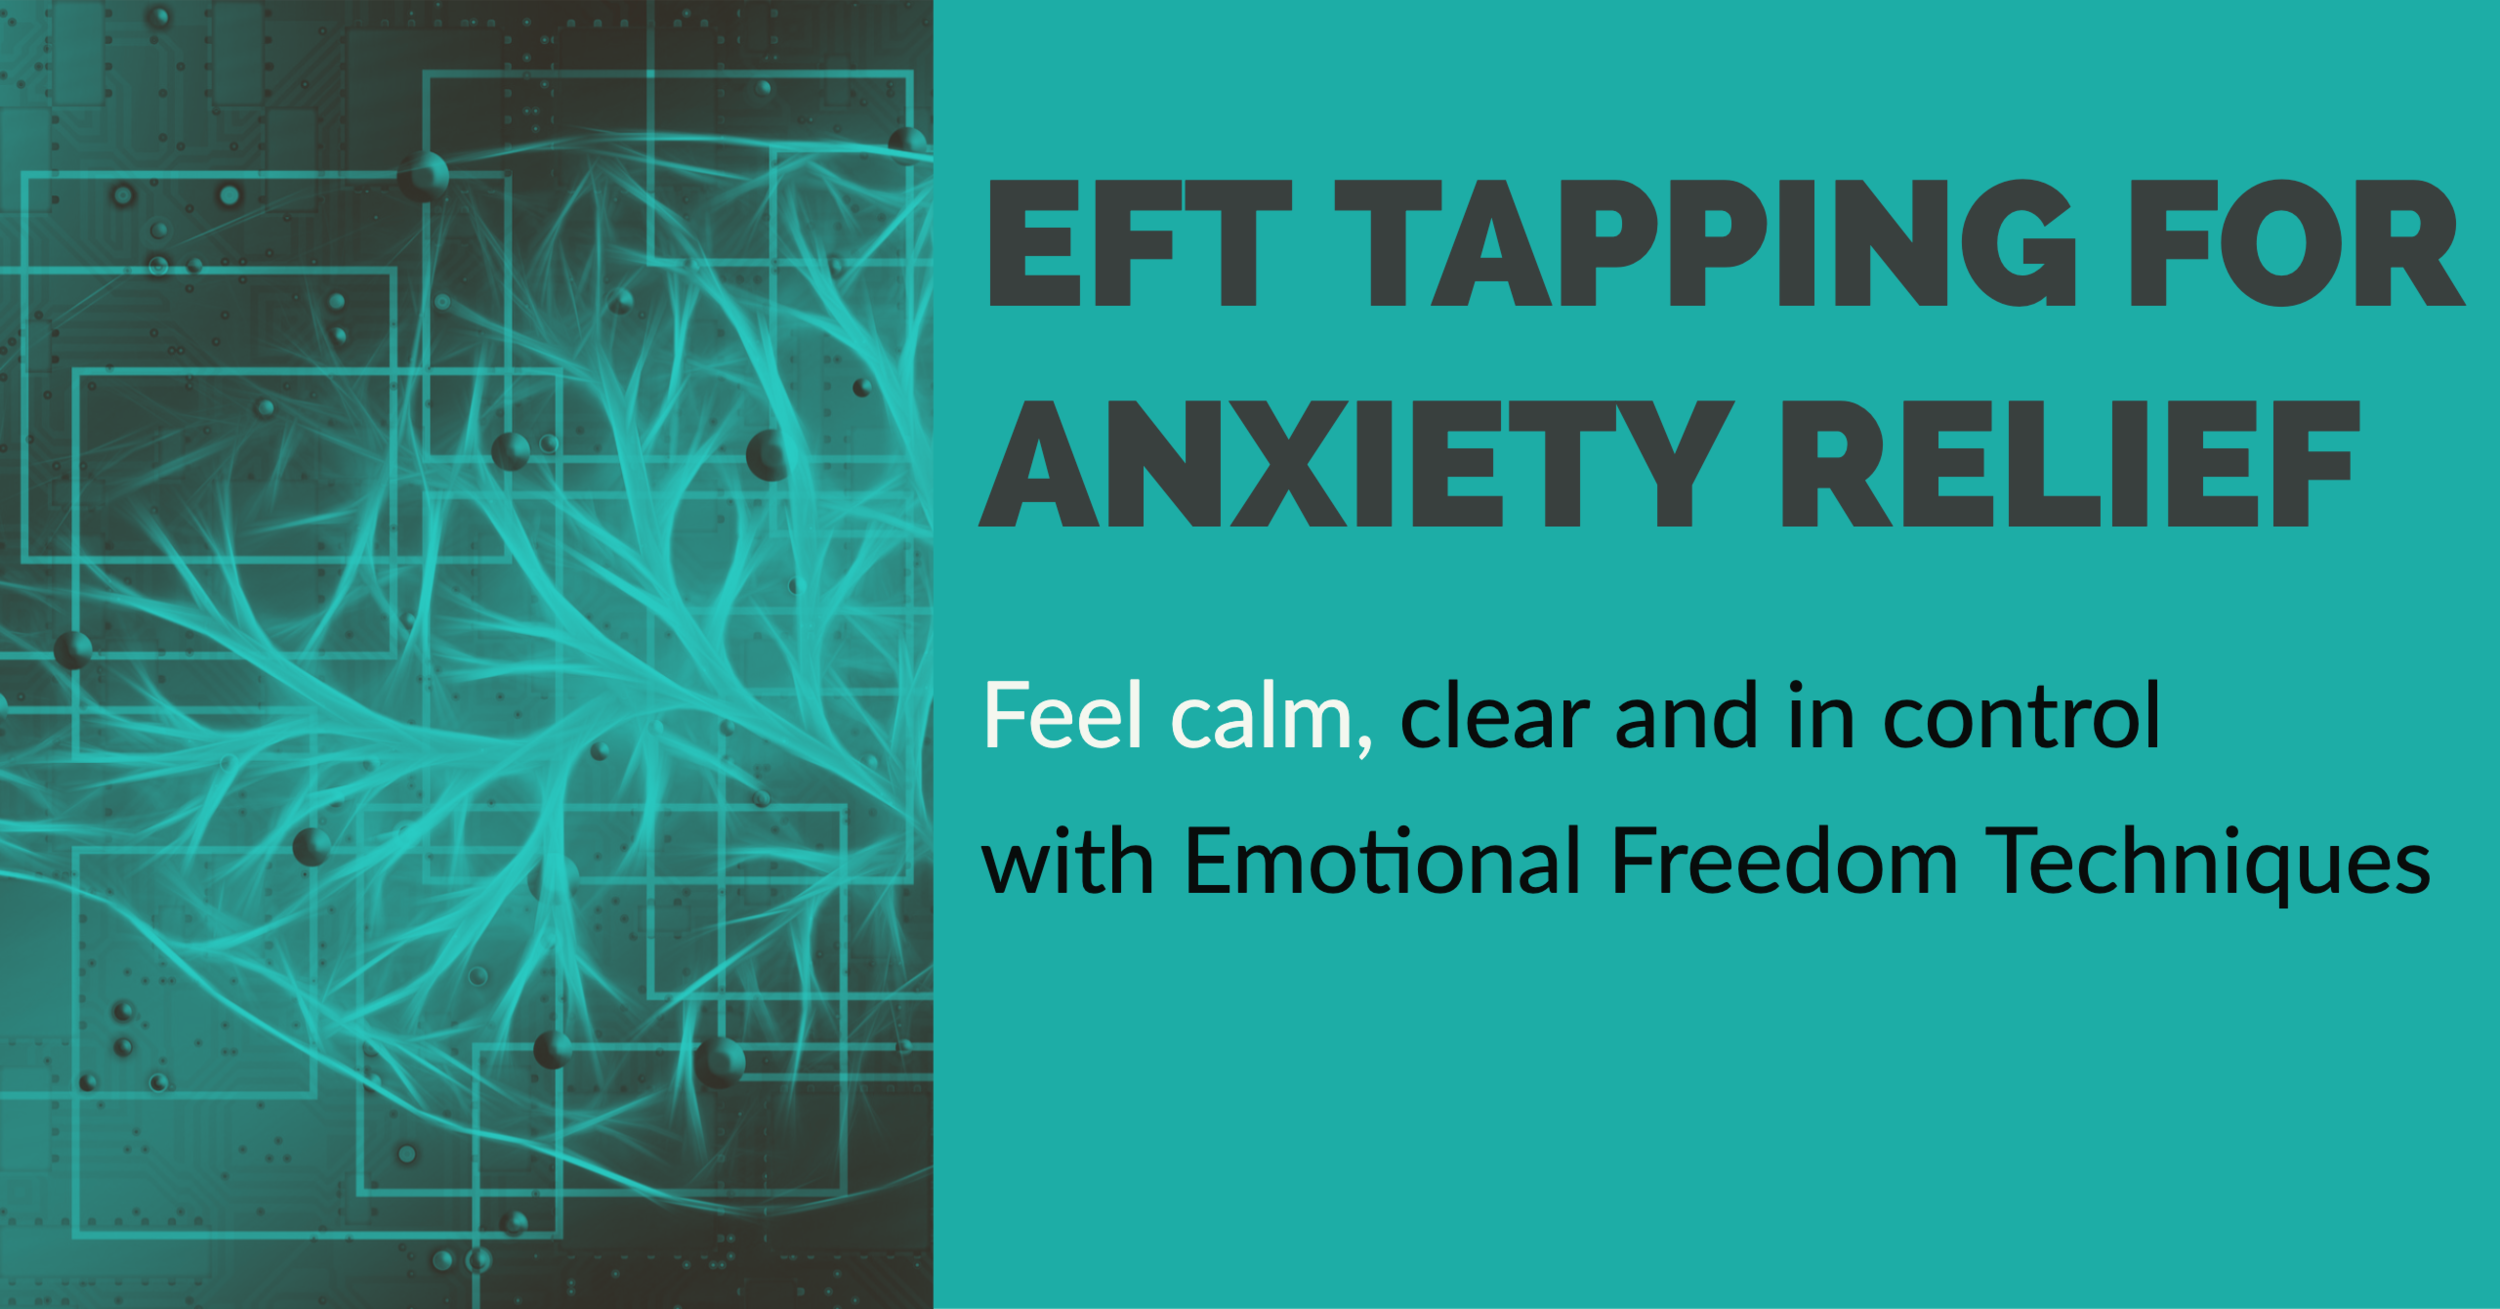 Everything you need to know to conquer your anxiety with EFT Tapping - Over the last ten years, Emotional Freedom Techniques (EFT) has gained world-wide acclaim for it's effectiveness in reducing the intensity of traumatic memories. Scientific studies have focused on the application of EFT in the treatment of depression, anxiety and trauma with positive results.EFT for Anxiety Relief will help you learn to use EFT quickly and easily. You will find audio recordings and a comprehensive guidebook created to help you start feeling relief from your anxiety today. You will develop awareness of your emotions and anxiety triggers and work in a self-respecting way to gently and thoroughly address your anxiety and help you move towards a calmer, happier life.